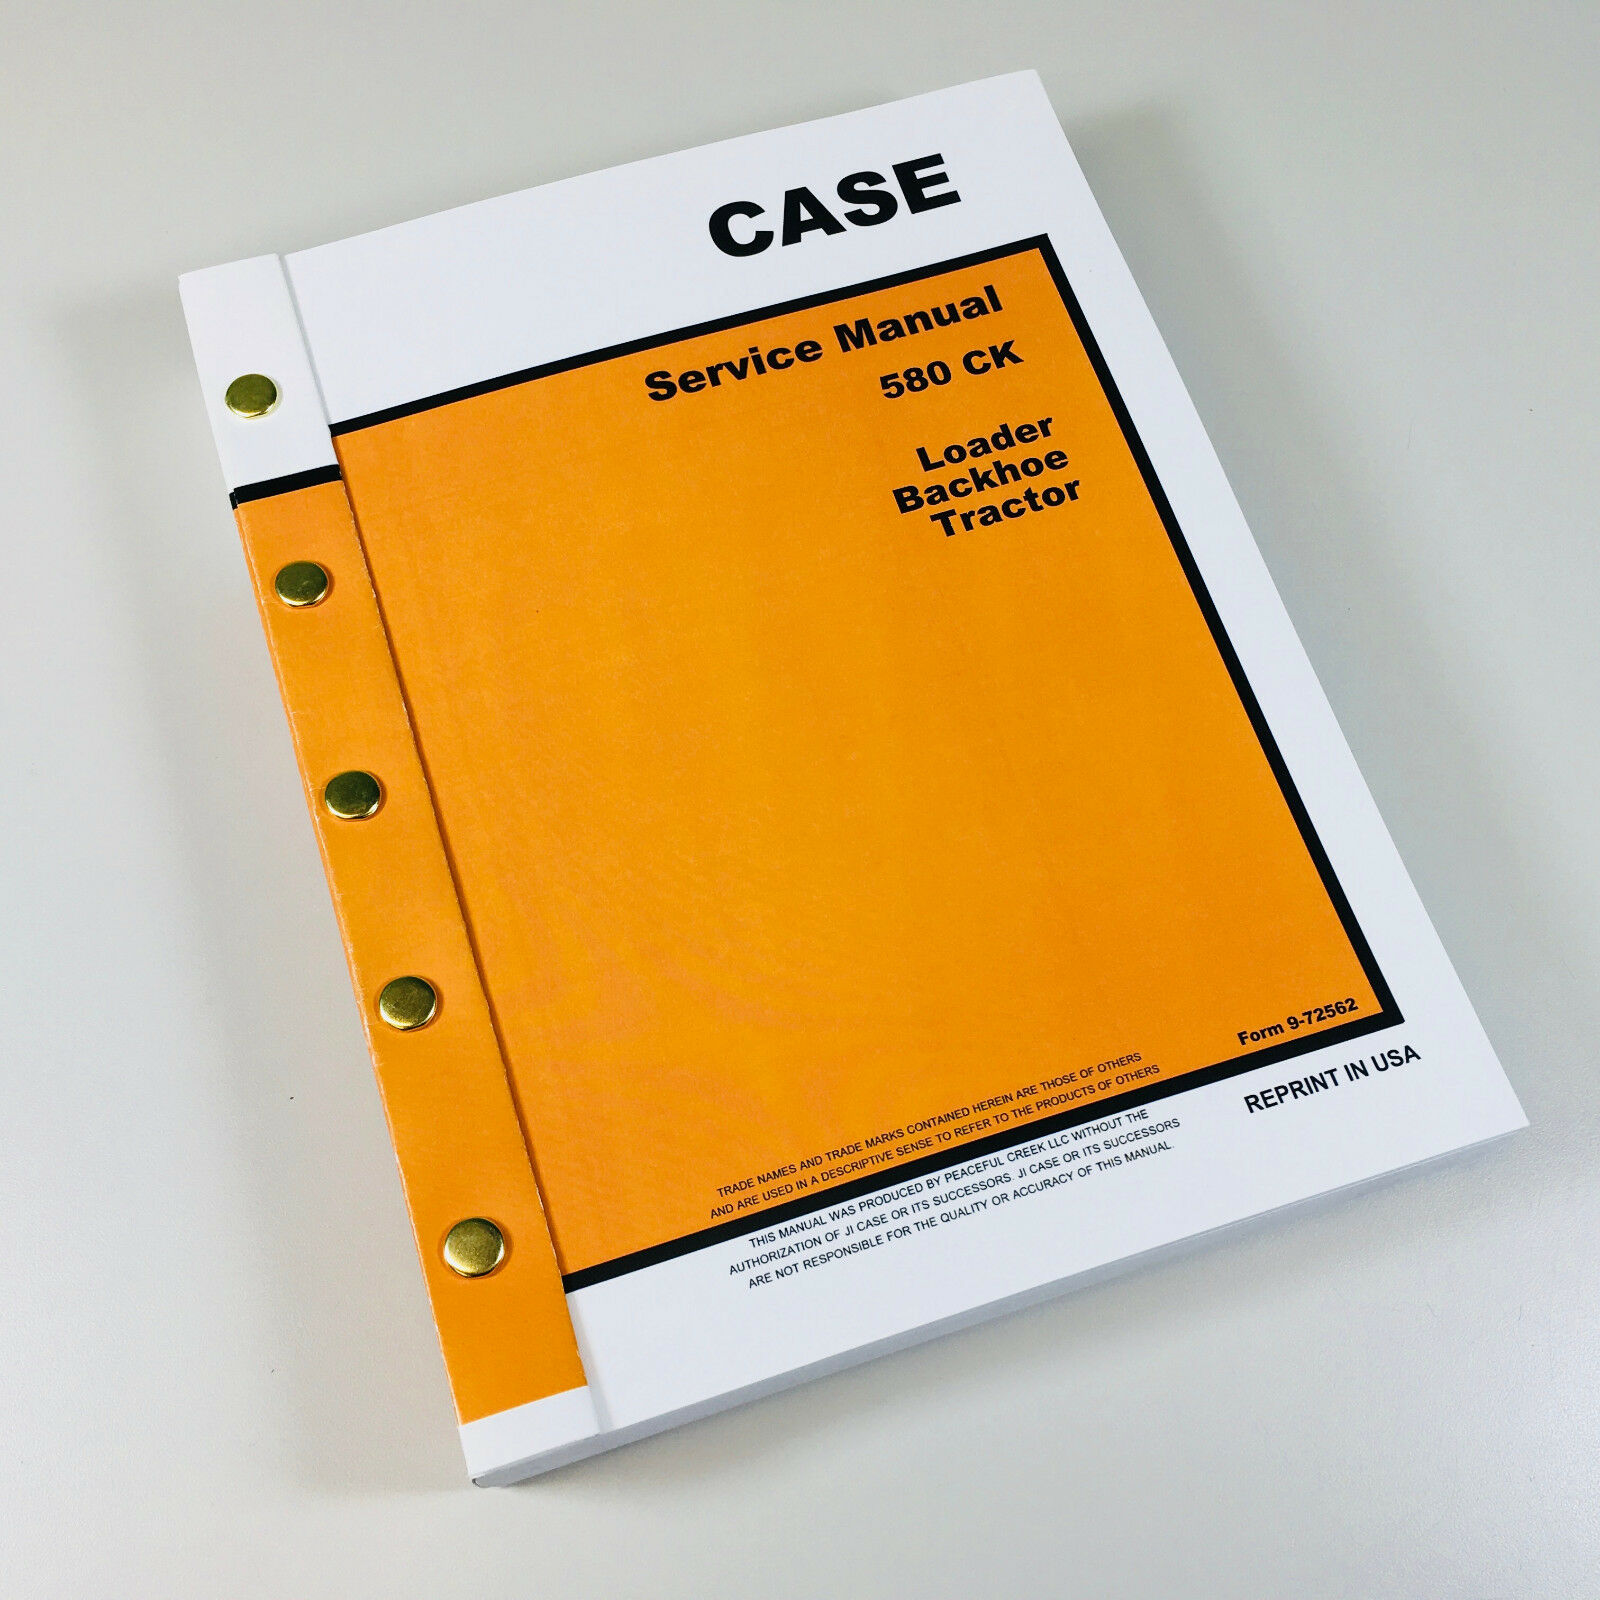 Stupendous Wiring Diagrams For Receptacles In Series Along With Case 580 B Wiring Database Mangnorabwedabyuccorg